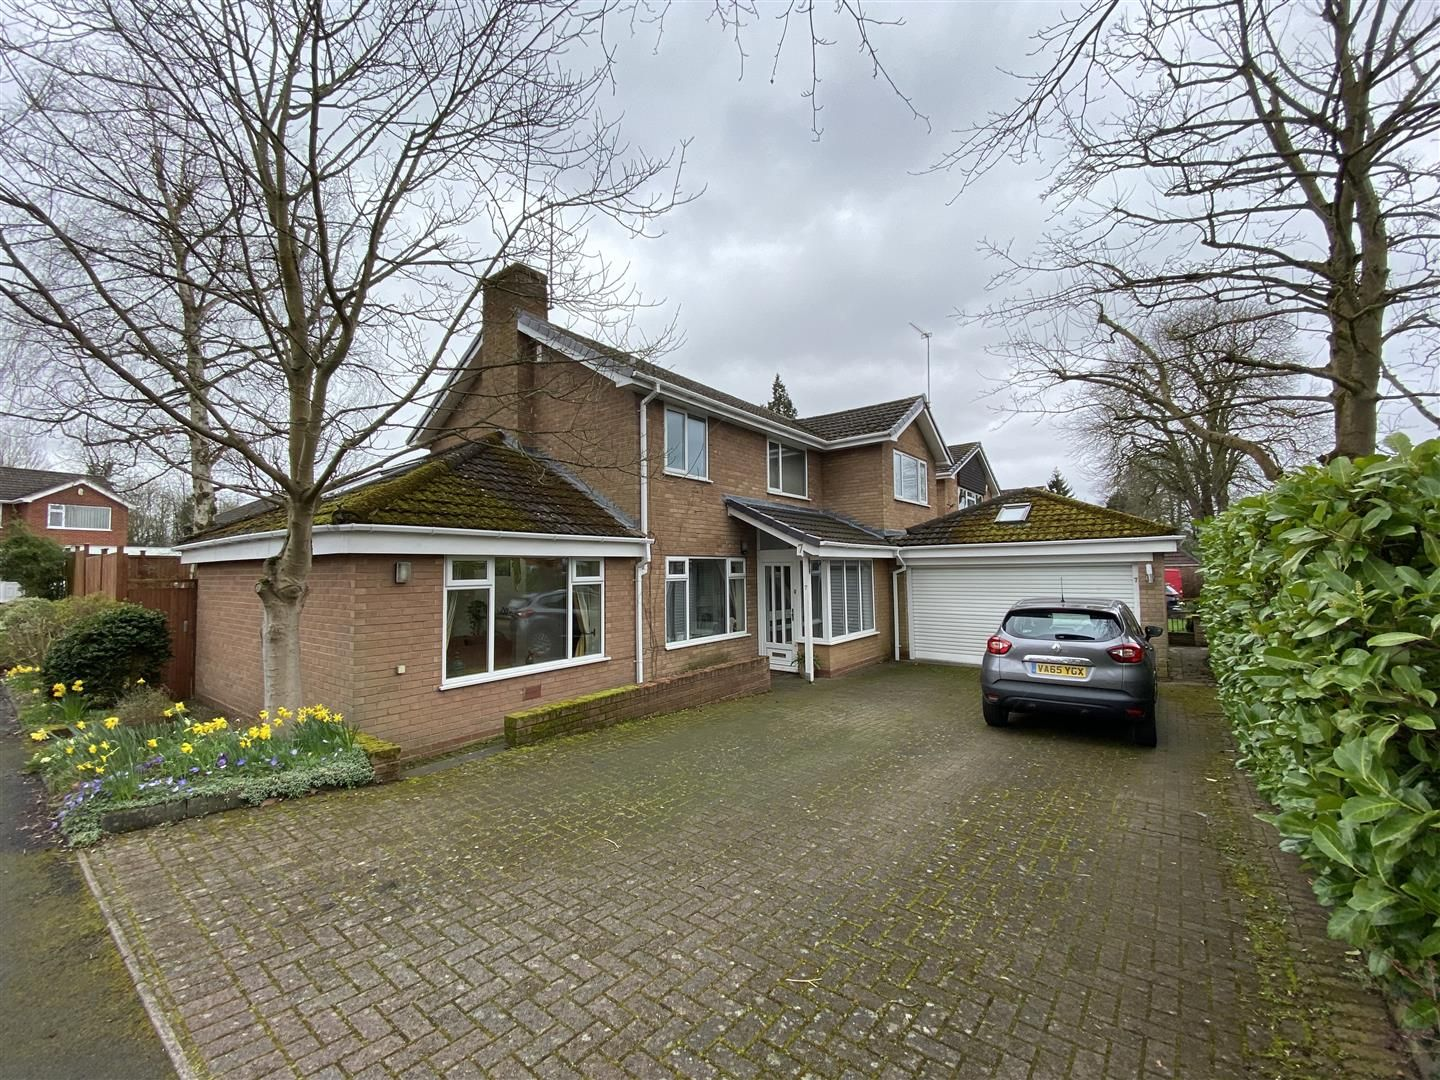 4 bed detached for sale in Blakedown 2